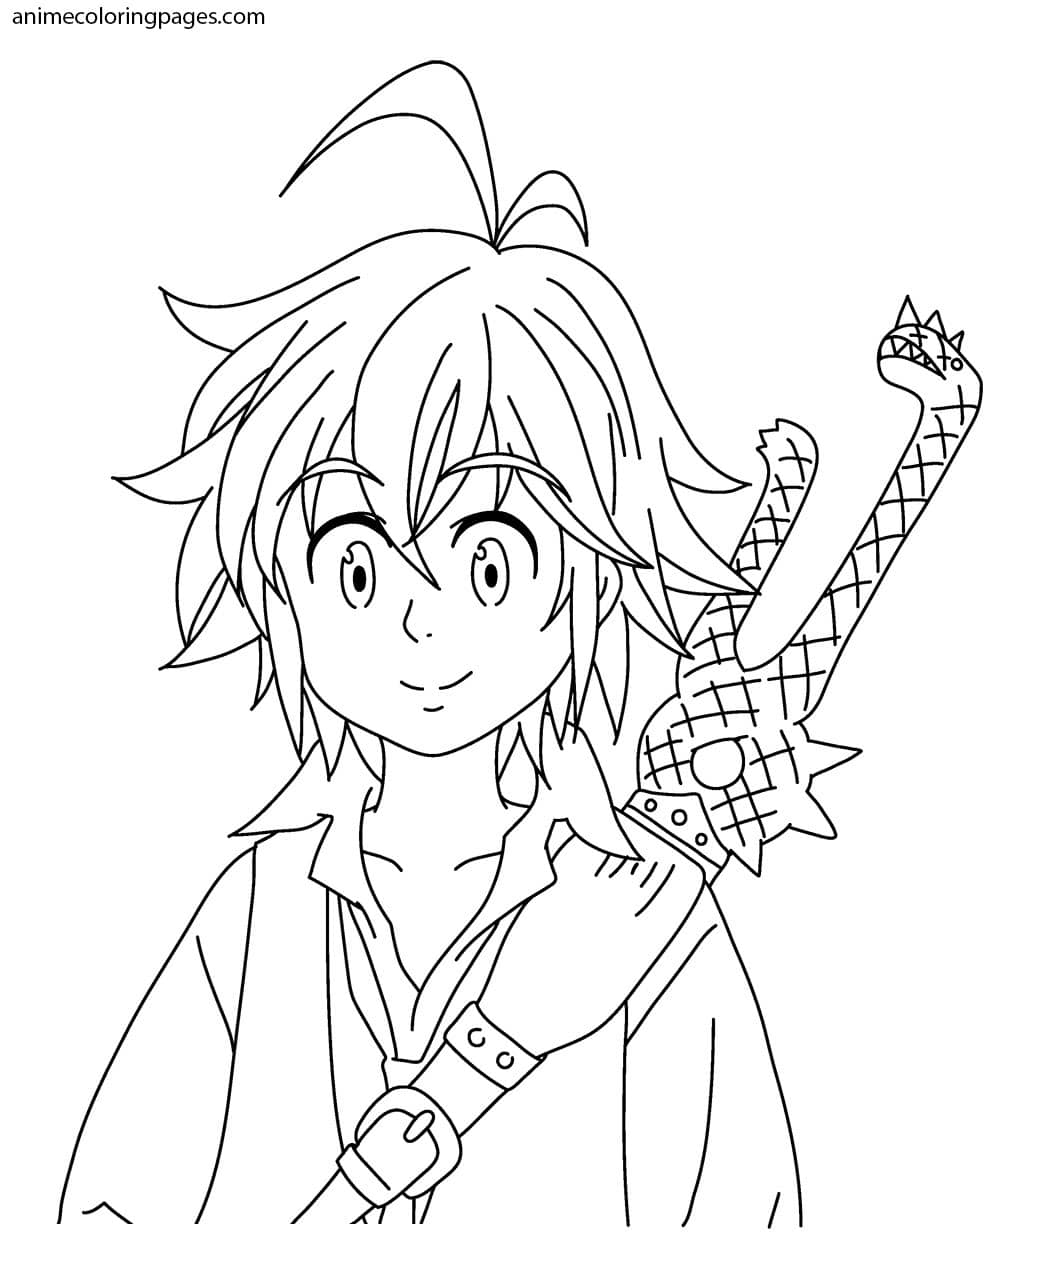 Meliodas Coloring Pages - Free Printable Coloring Pages for Kids